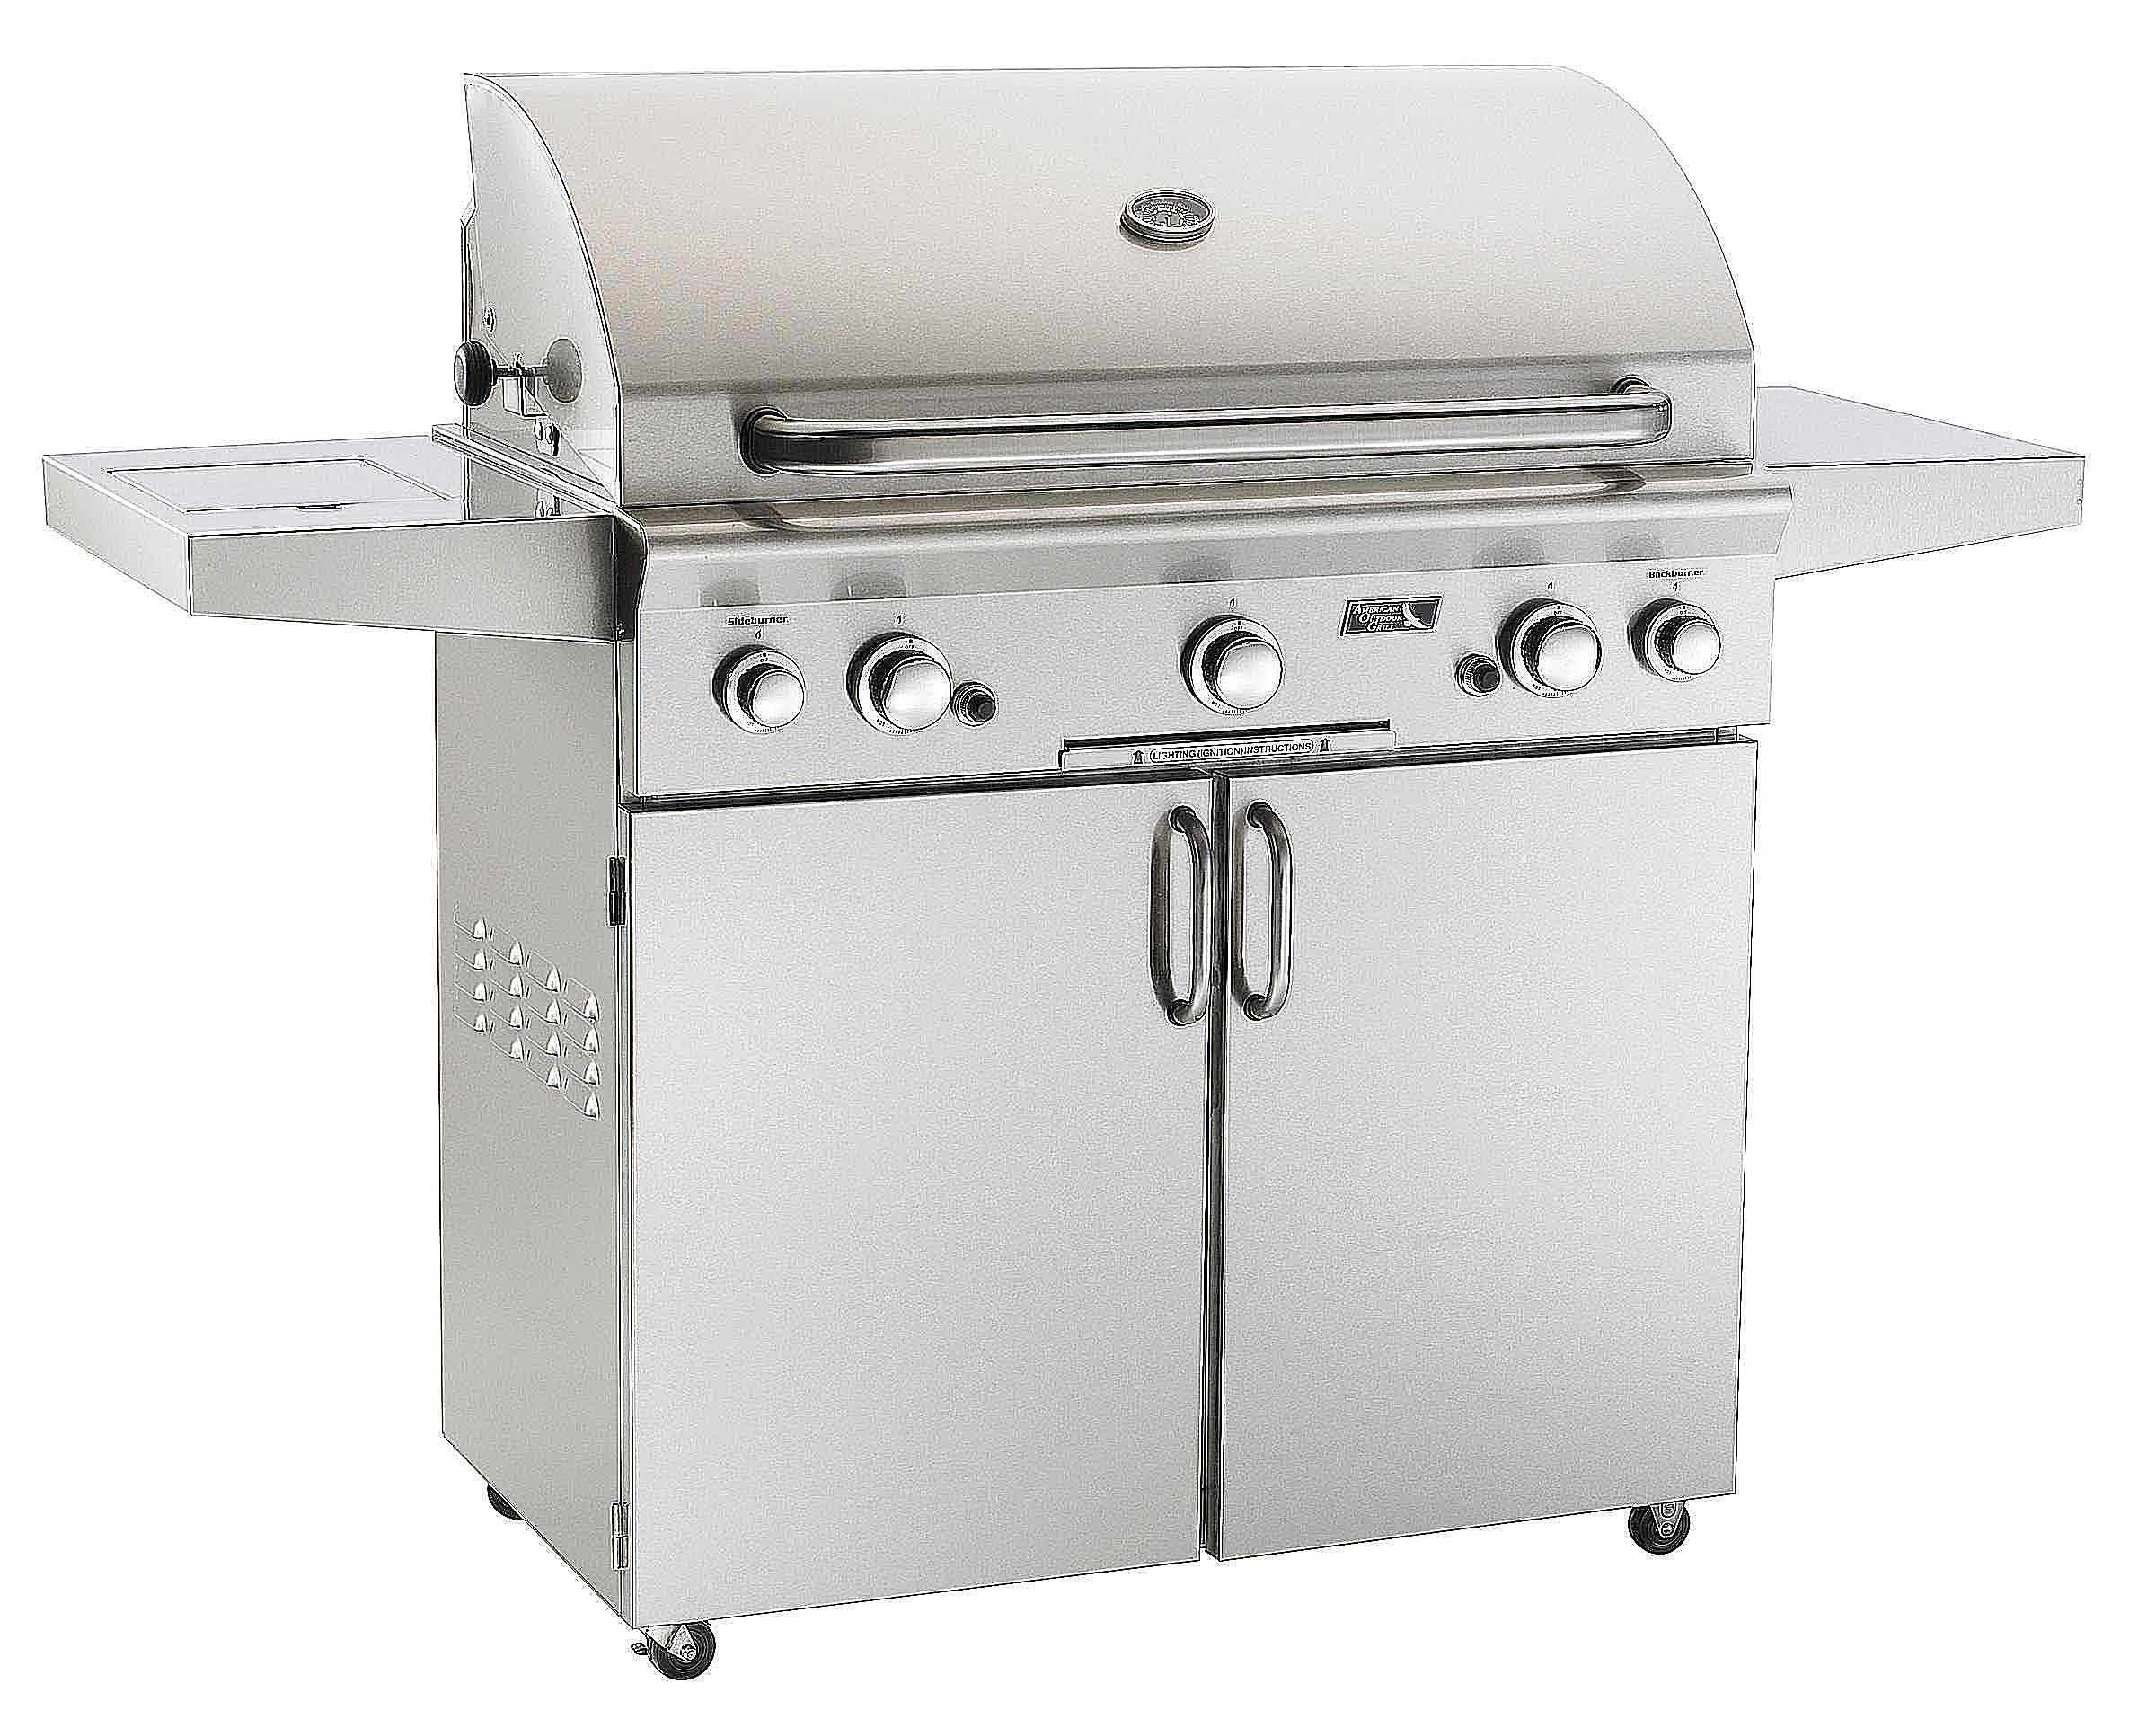 The 10 Best Mid Range Gas Grills to Buy in 2018